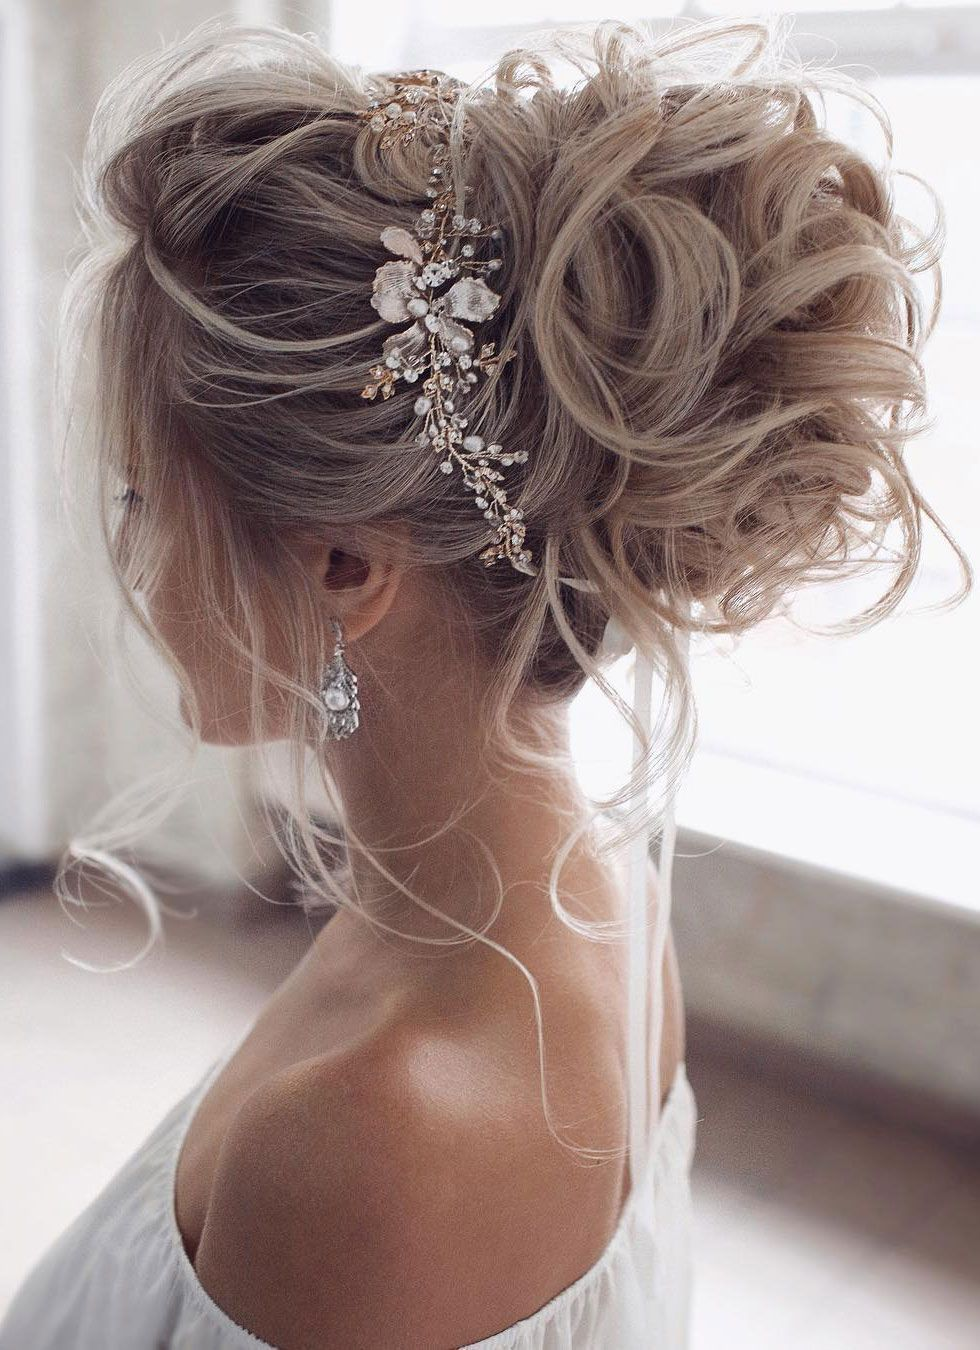 28 Chic Wedding Updo Hairstyles That Never Fail Wedding Updo Hairstyles That Never Fail